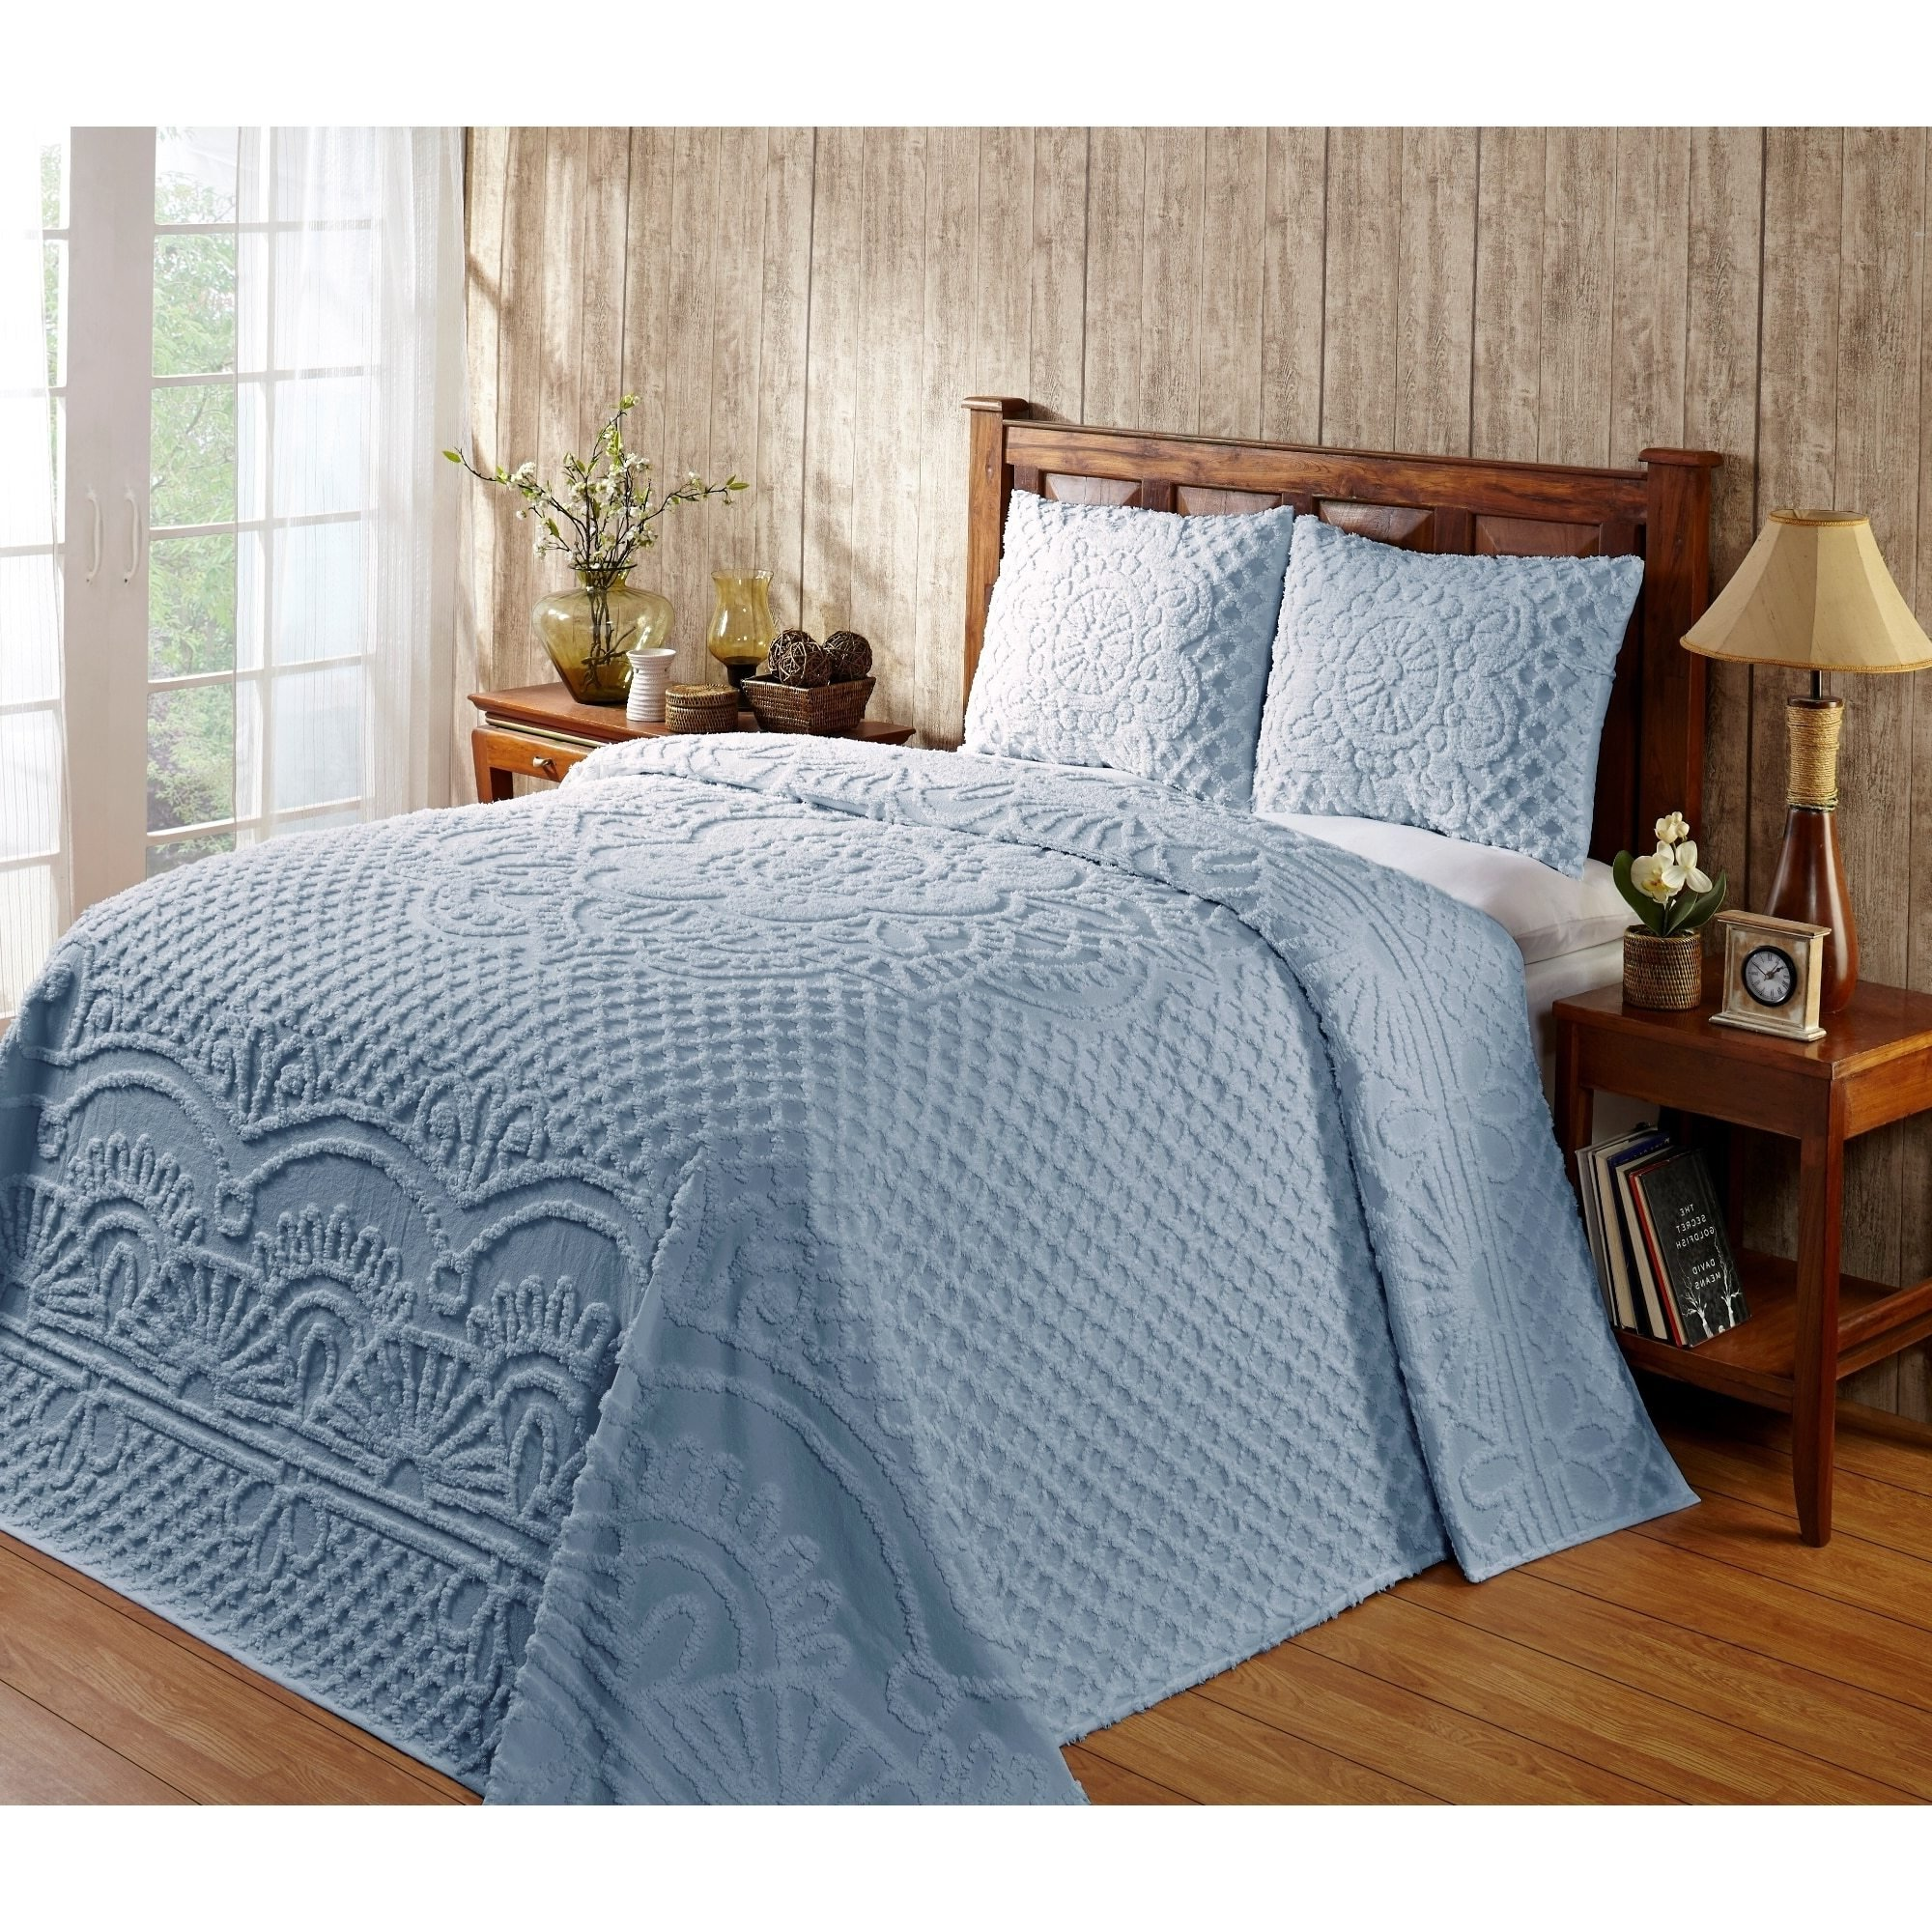 2 Piece 81 x 110 Pale Blue Oversized Chenille Bedspread Twin to the Floor Set, Extra Long Bedding Chenile Xtra Wide, Hangs Down Side Bed Frame, Drops Drapes French Country Raised Pattern, Cotton by D&H